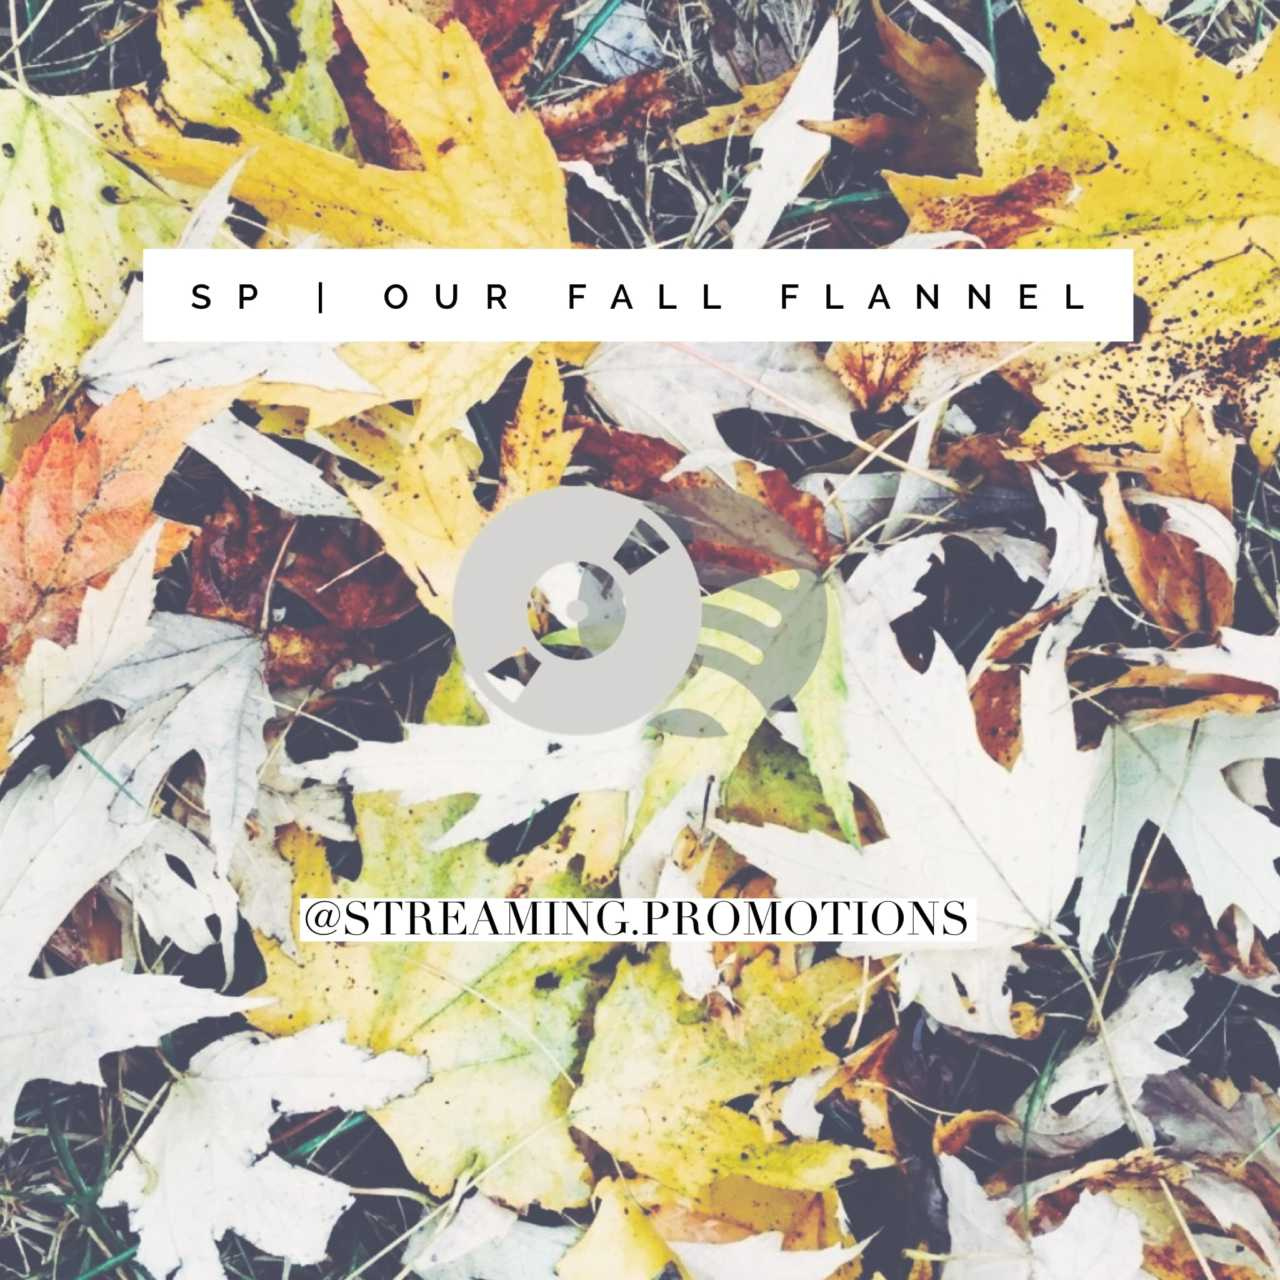 Happy October! Our fall playlist is here.